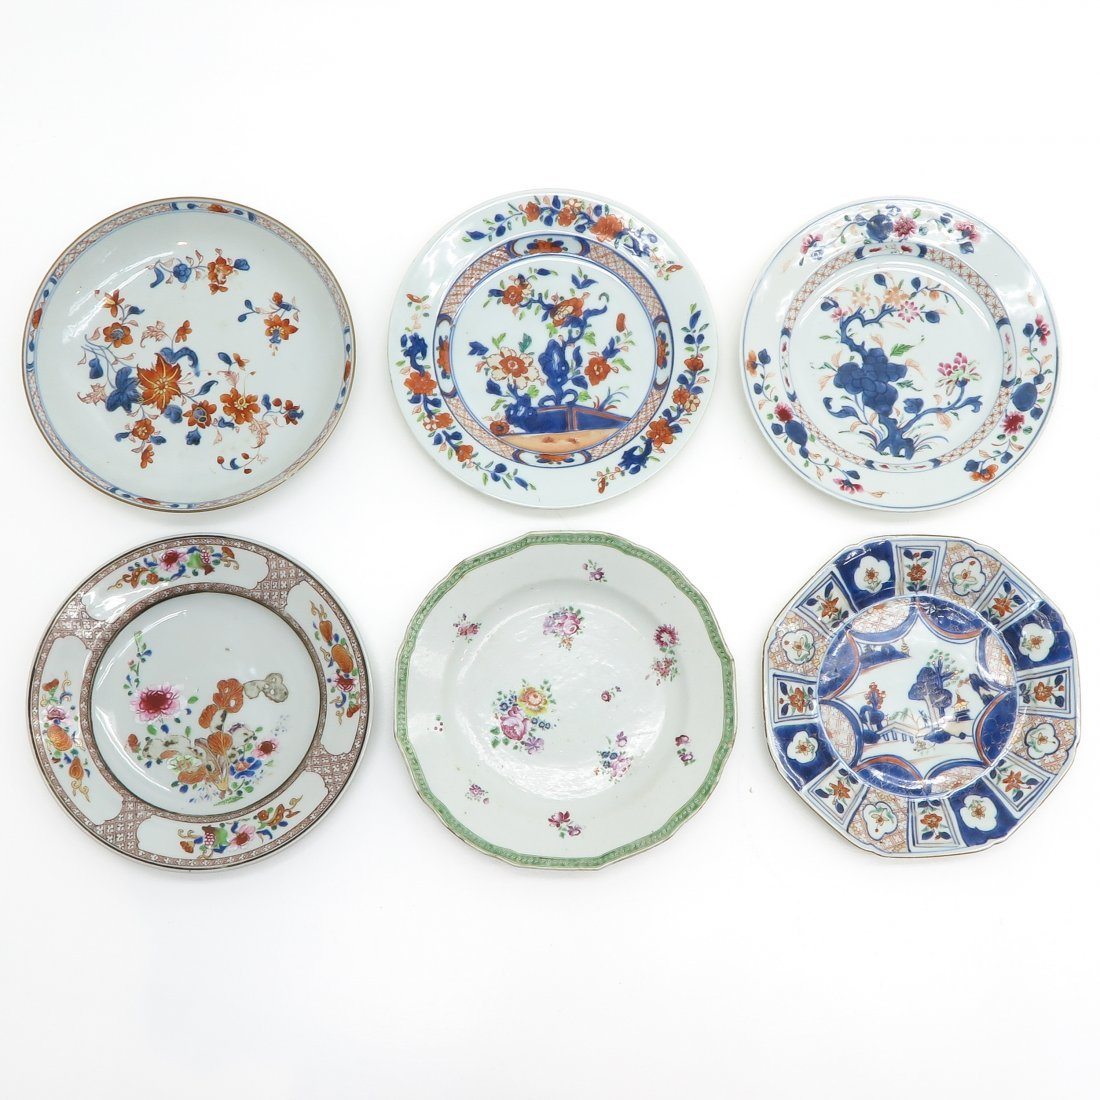 Lot of 6 18th / 19th Century China Porcelain Plates